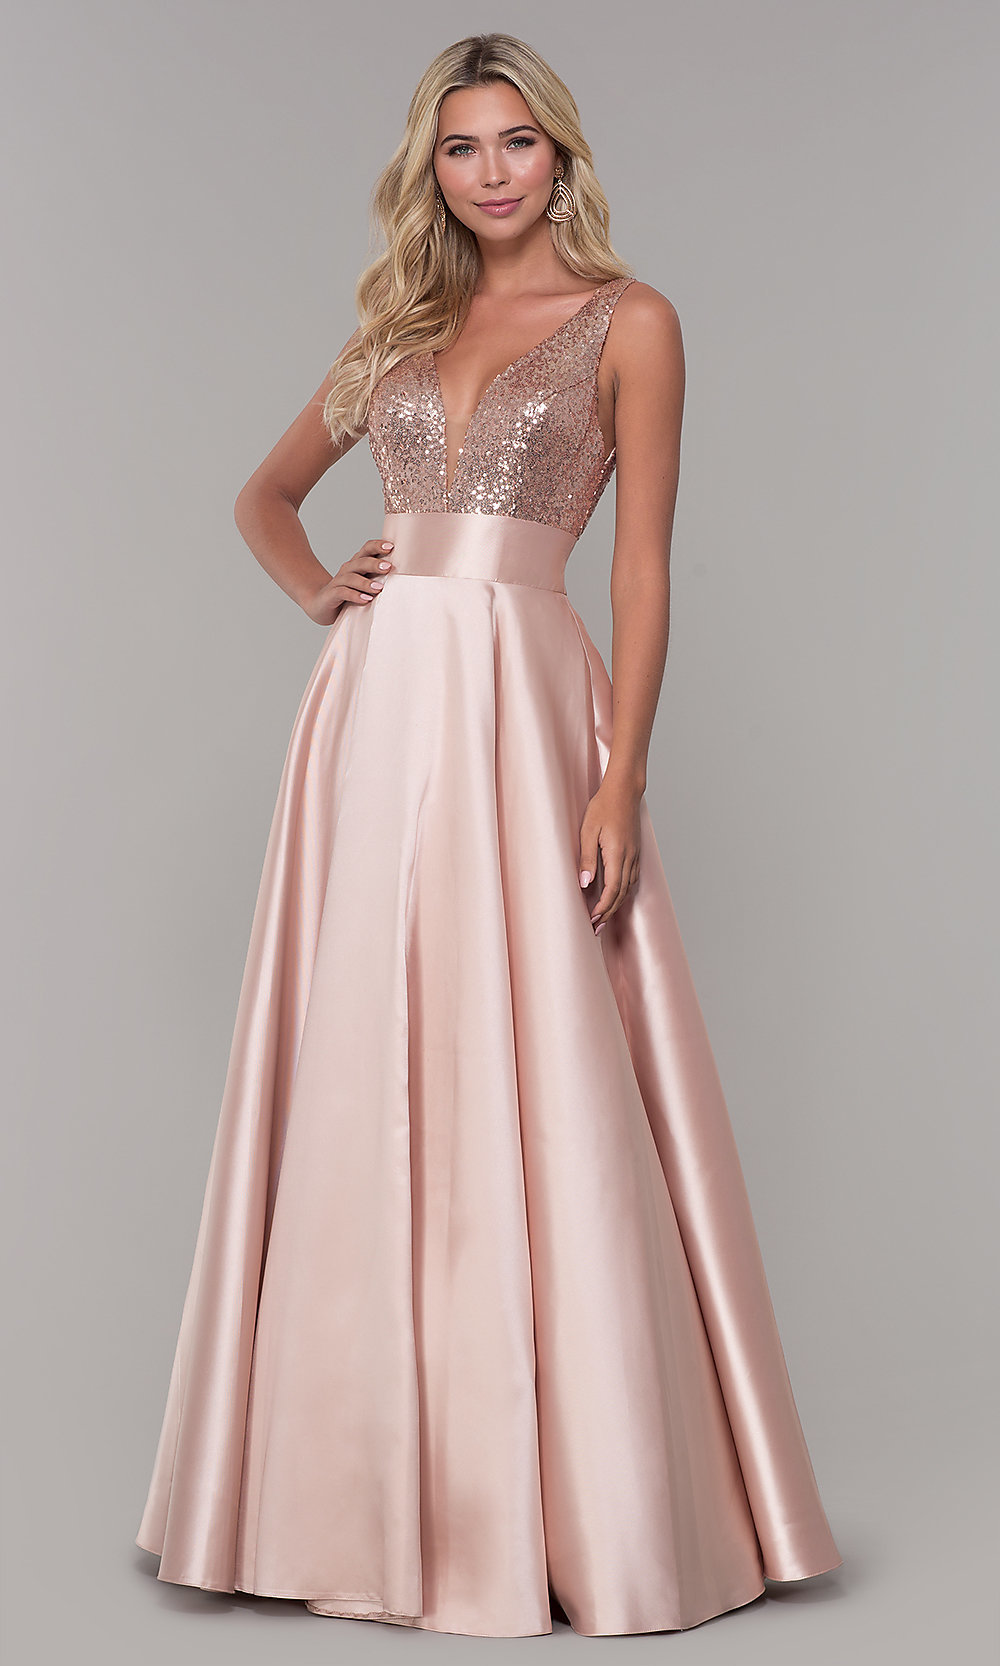 a924c1f272b Designer Long Prom Dress with Sequin Bodice - PromGirl